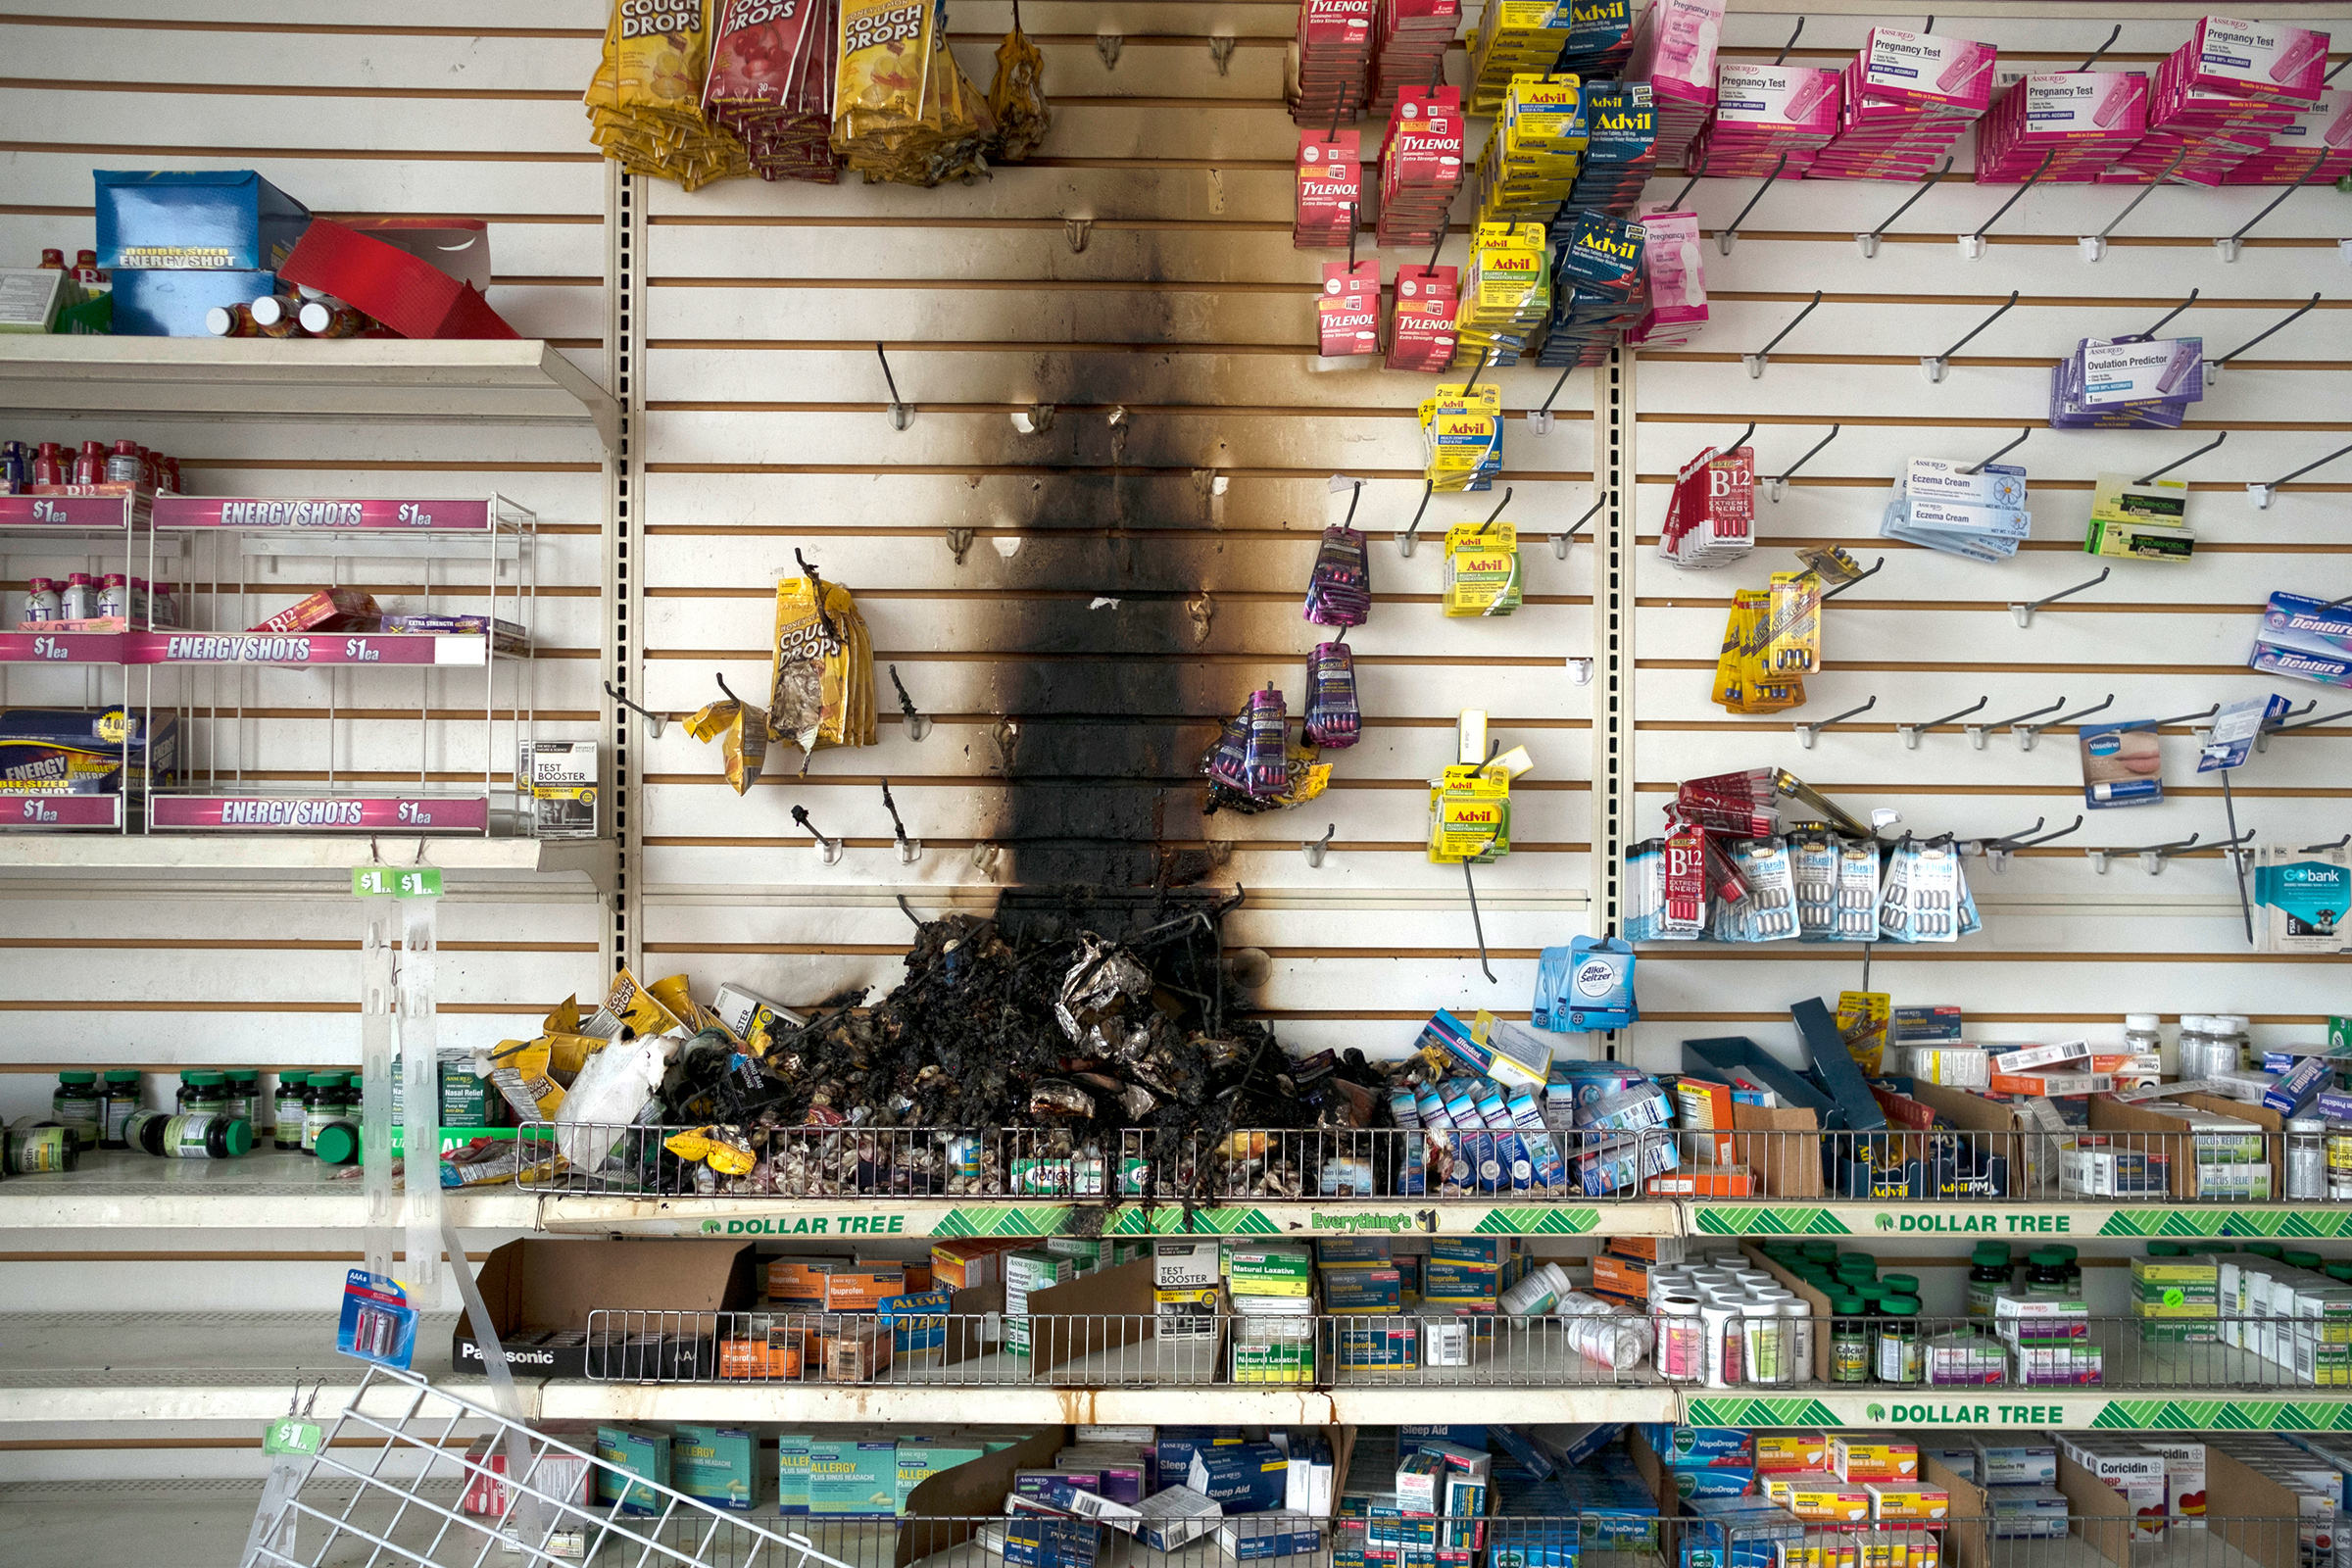 Fire damage is seen inside a Dollar Tree in Minneapolis on May 28, following nights of protests and vandalism in response to the police killing of George Floyd three days earlier.